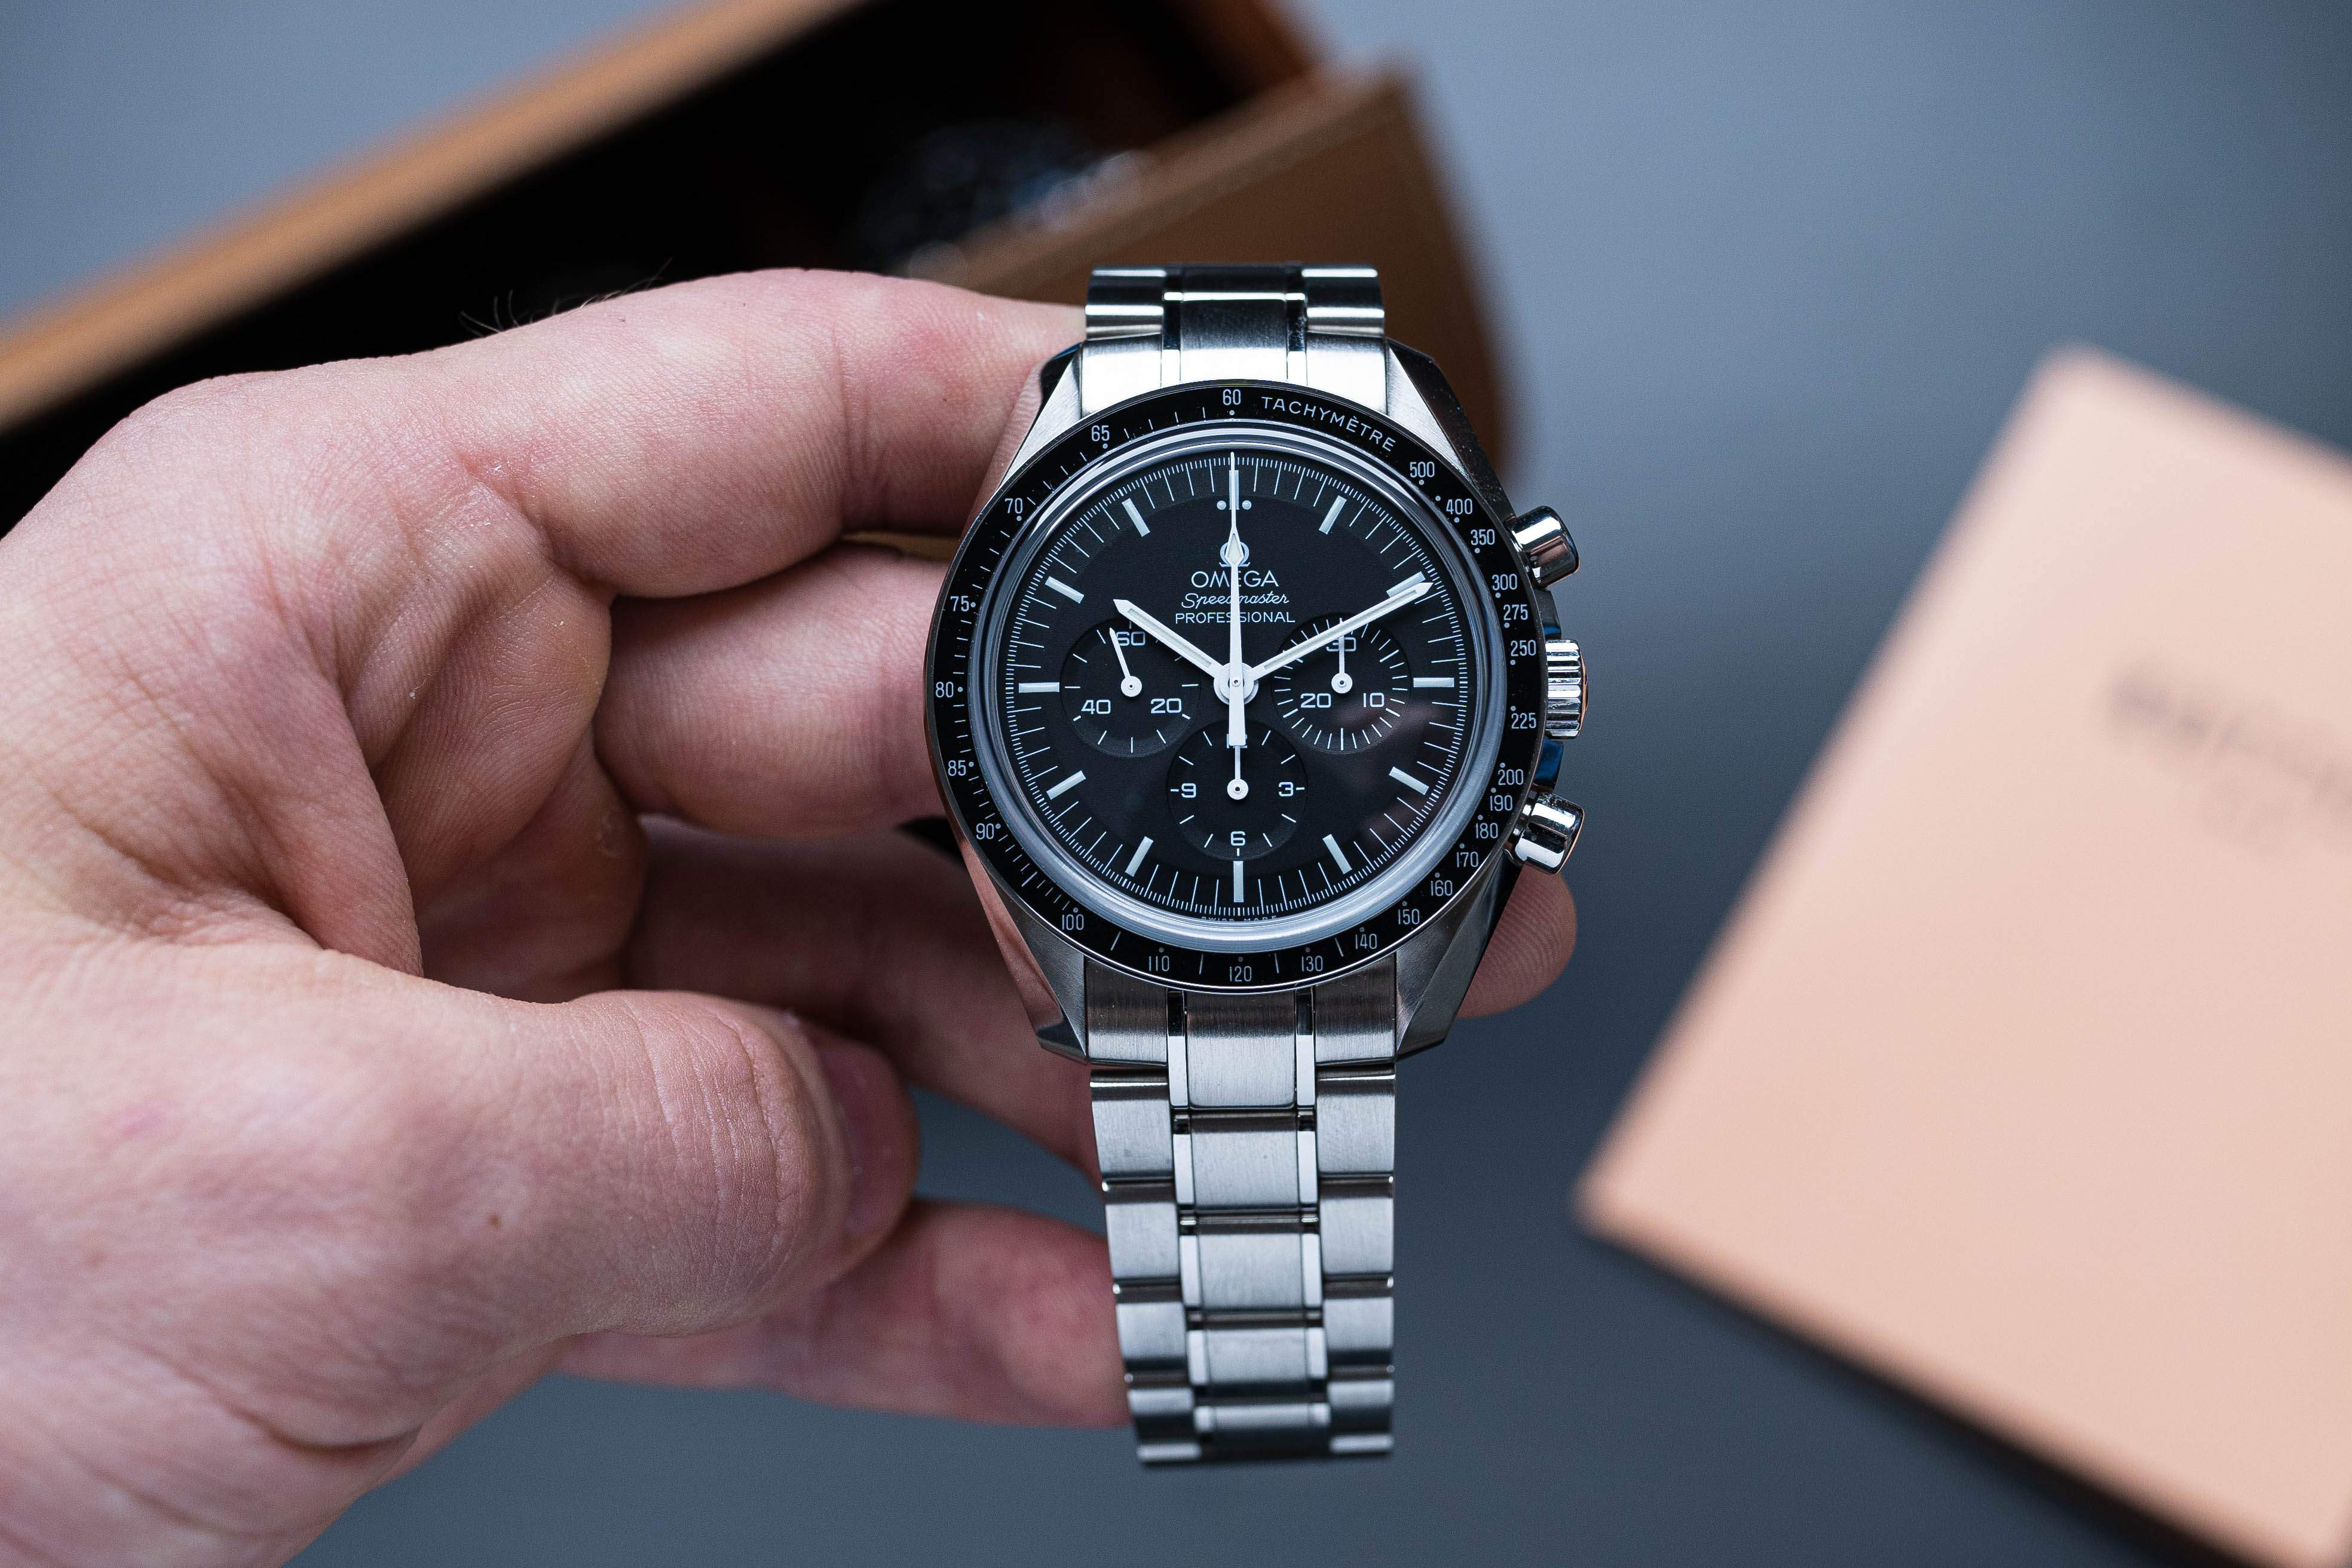 One of Omega's most iconic models: the Speedmaster Professional, a.k.a. the